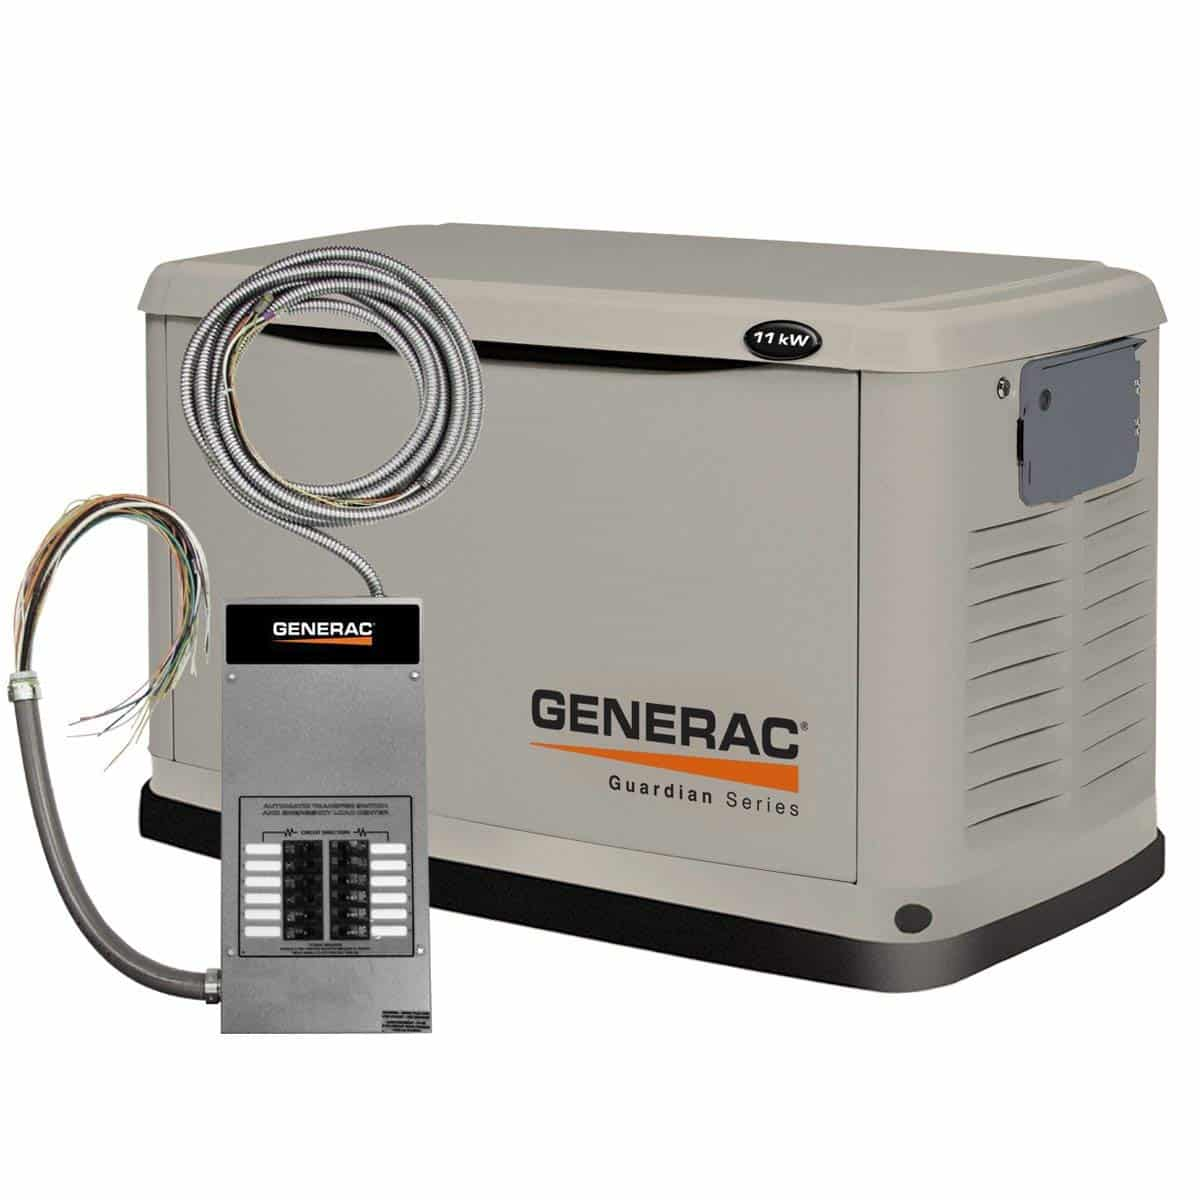 Generac 6437 Guardian Series, 11kW Air Cooled Standby Whole House Generators